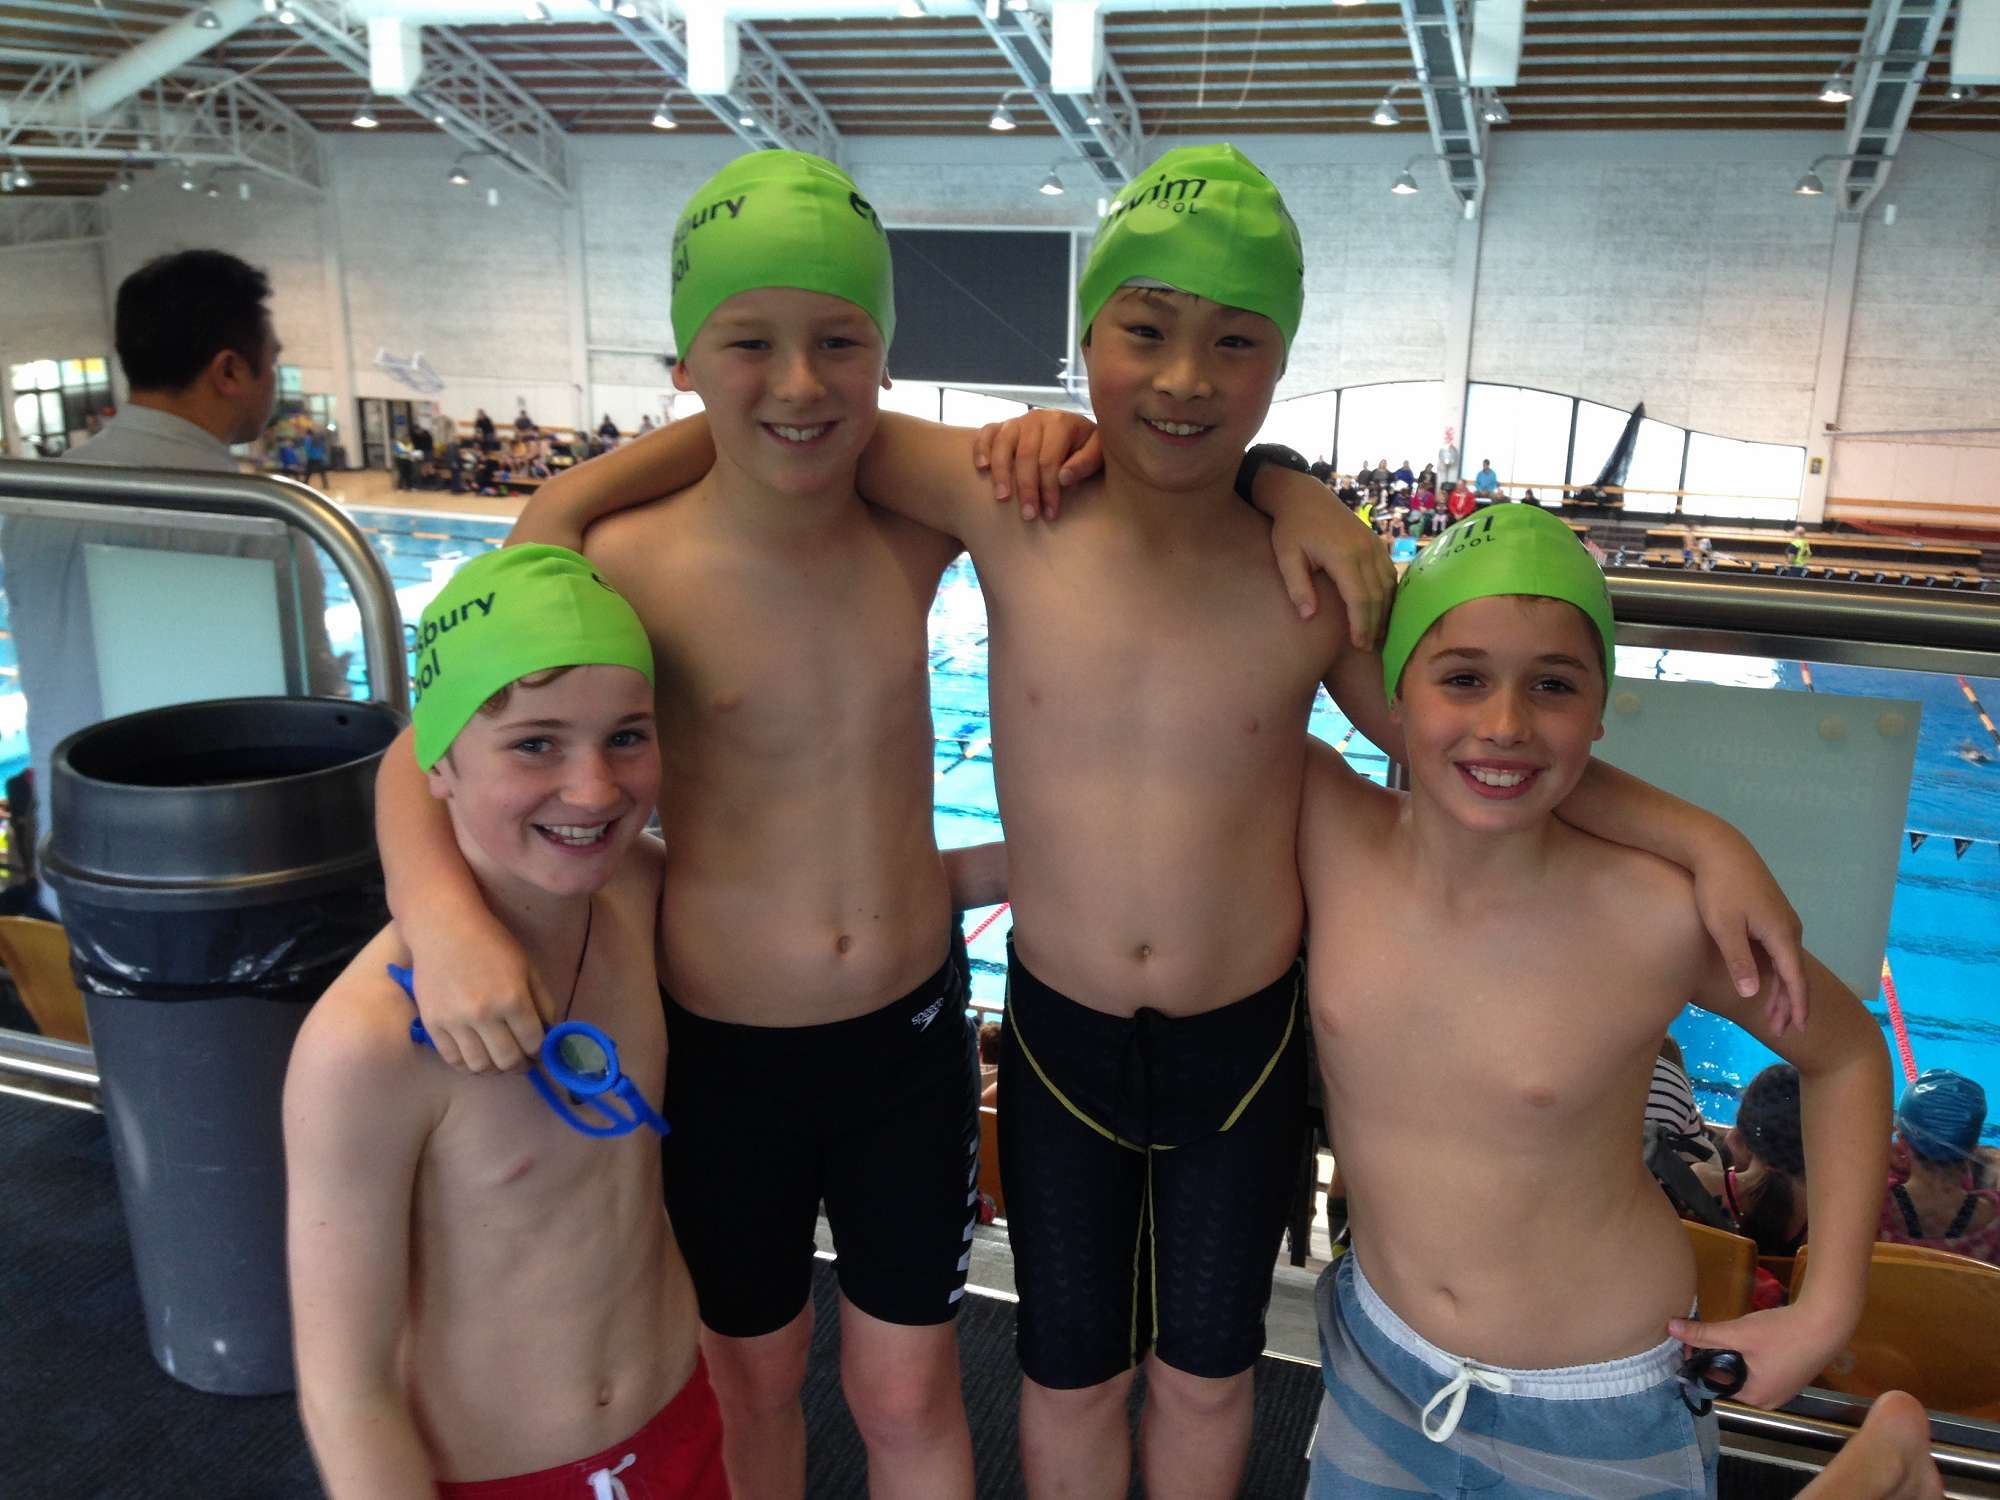 The Year 5 boys relay team